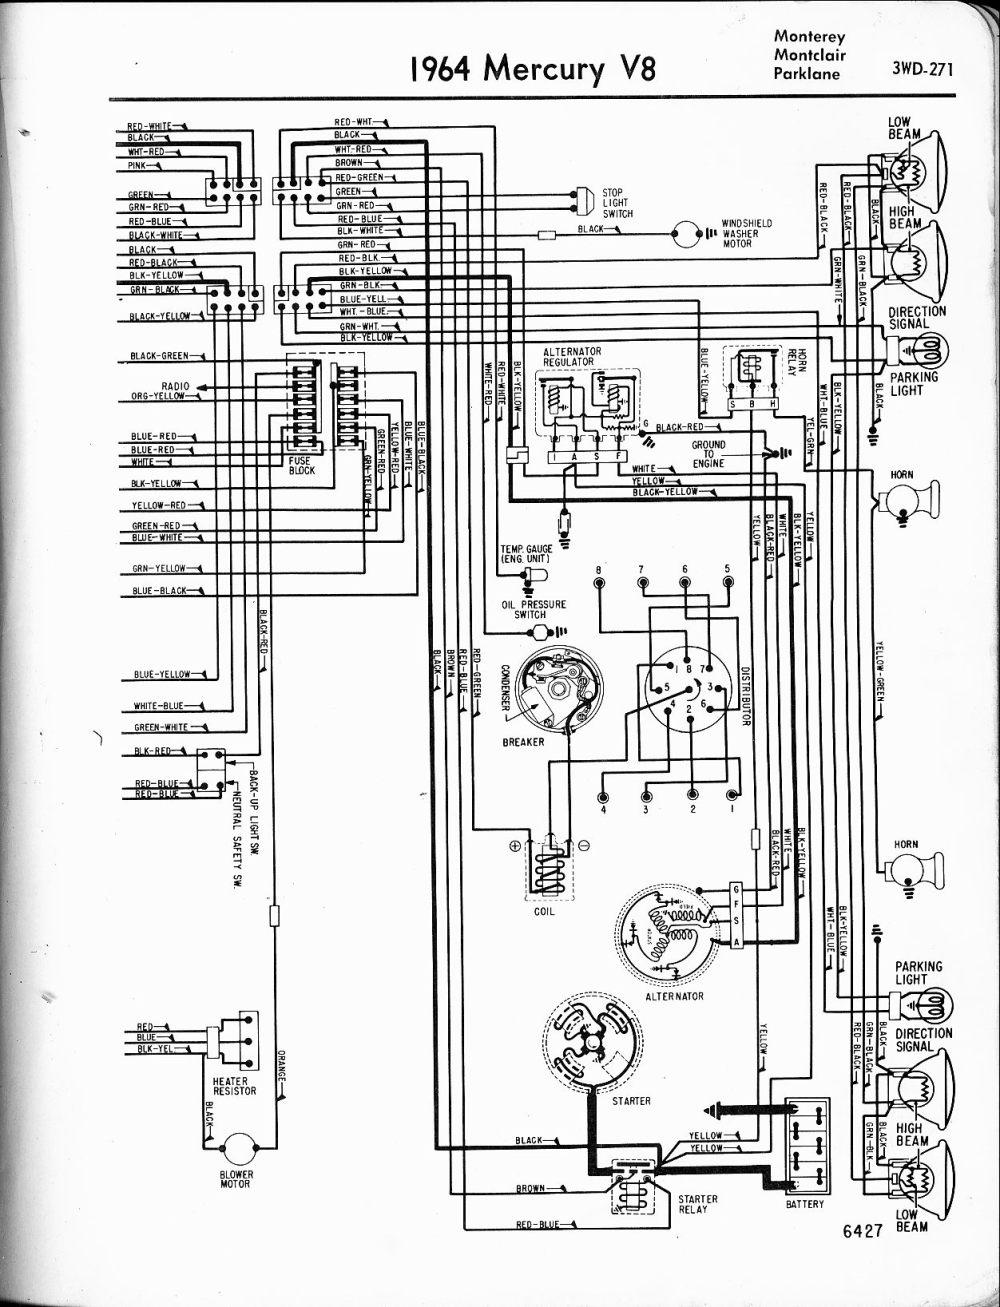 medium resolution of mercury wiring diagrams the old car manual project1964 v8 monterey montclair parklane right